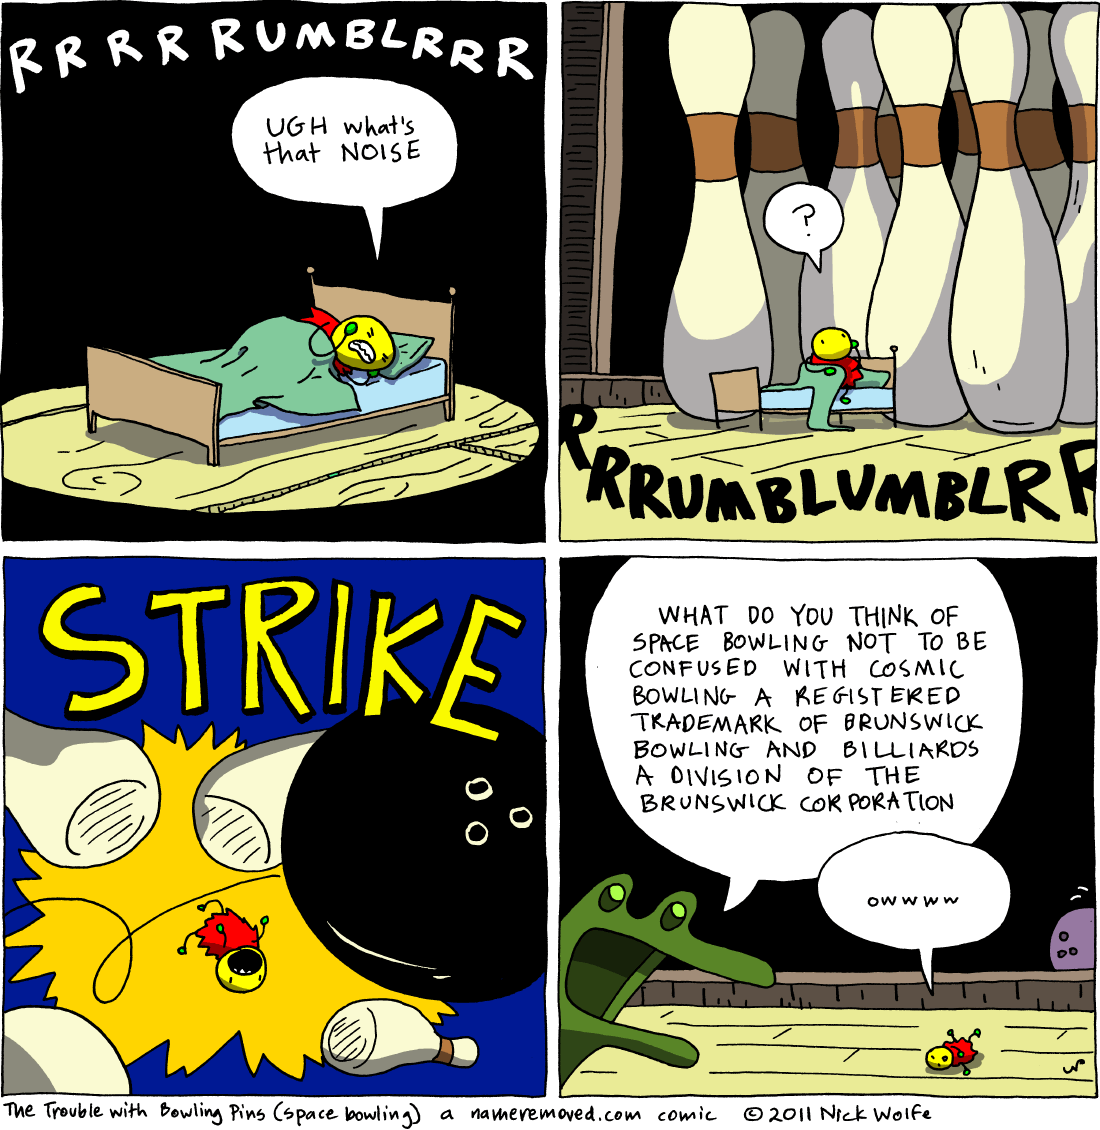 The Trouble With Bowling Pins (space bowling)